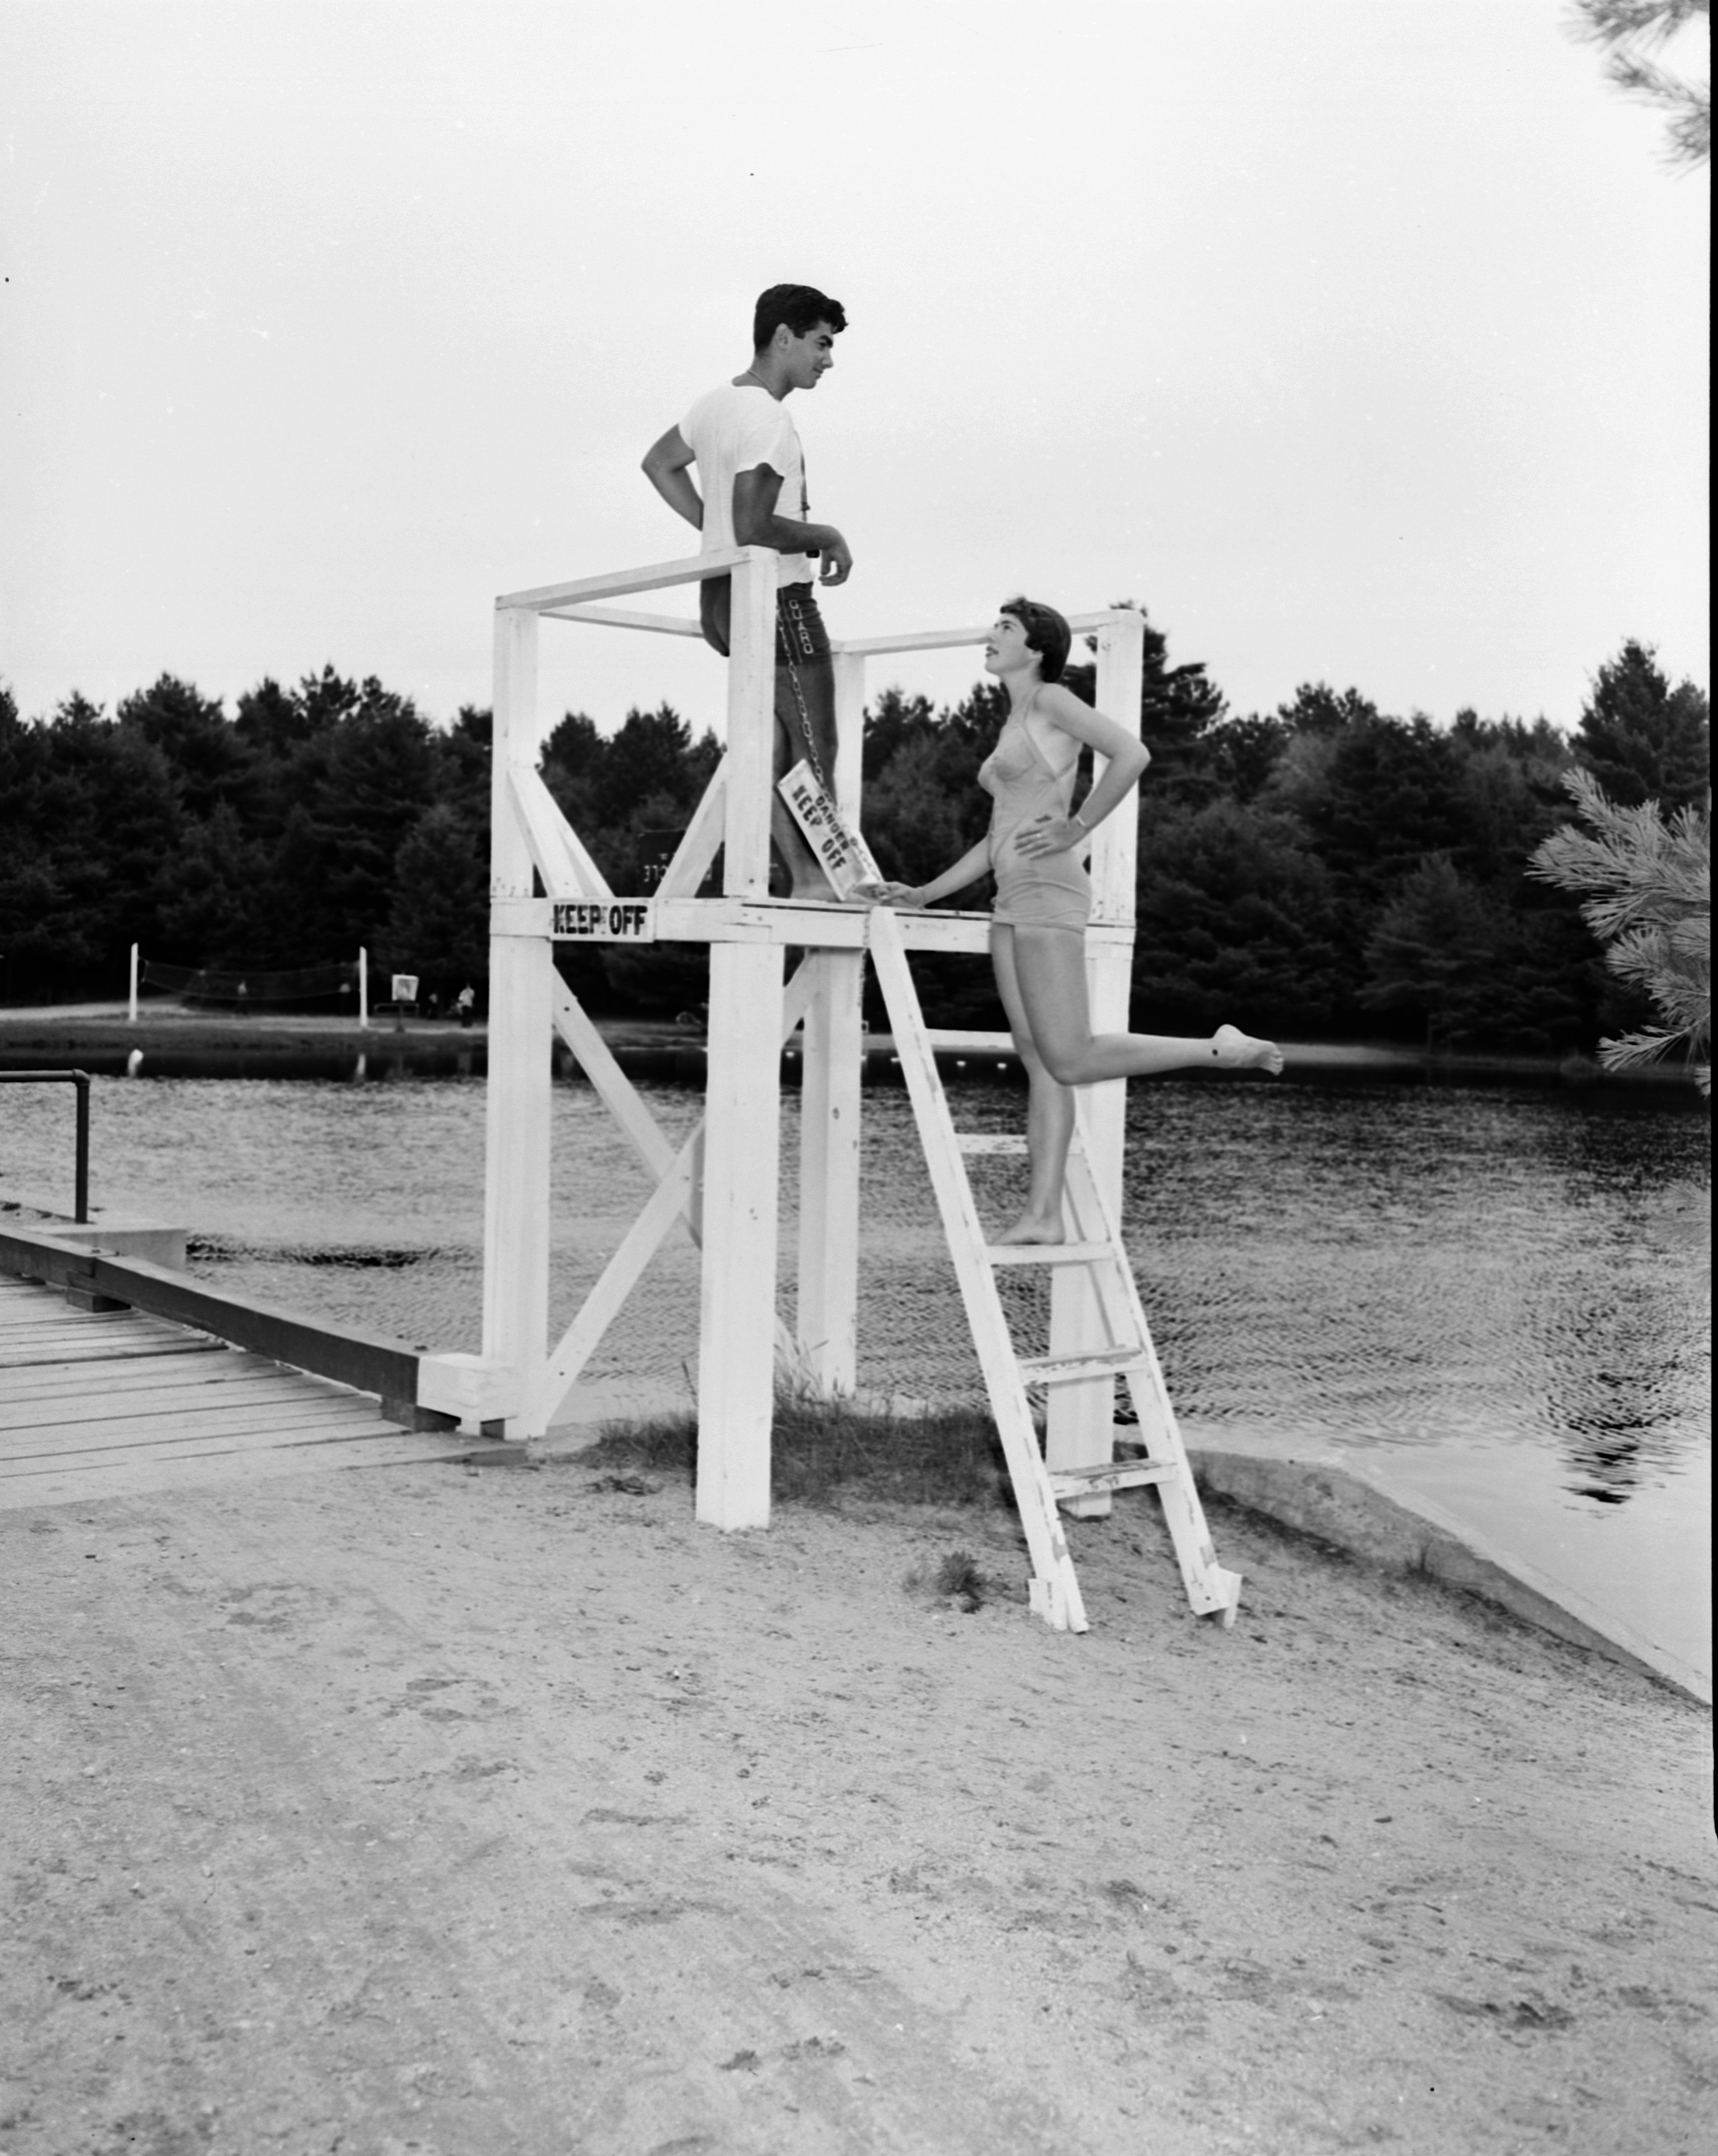 Lifeguards Chatting on the Beach, July 18, 1951